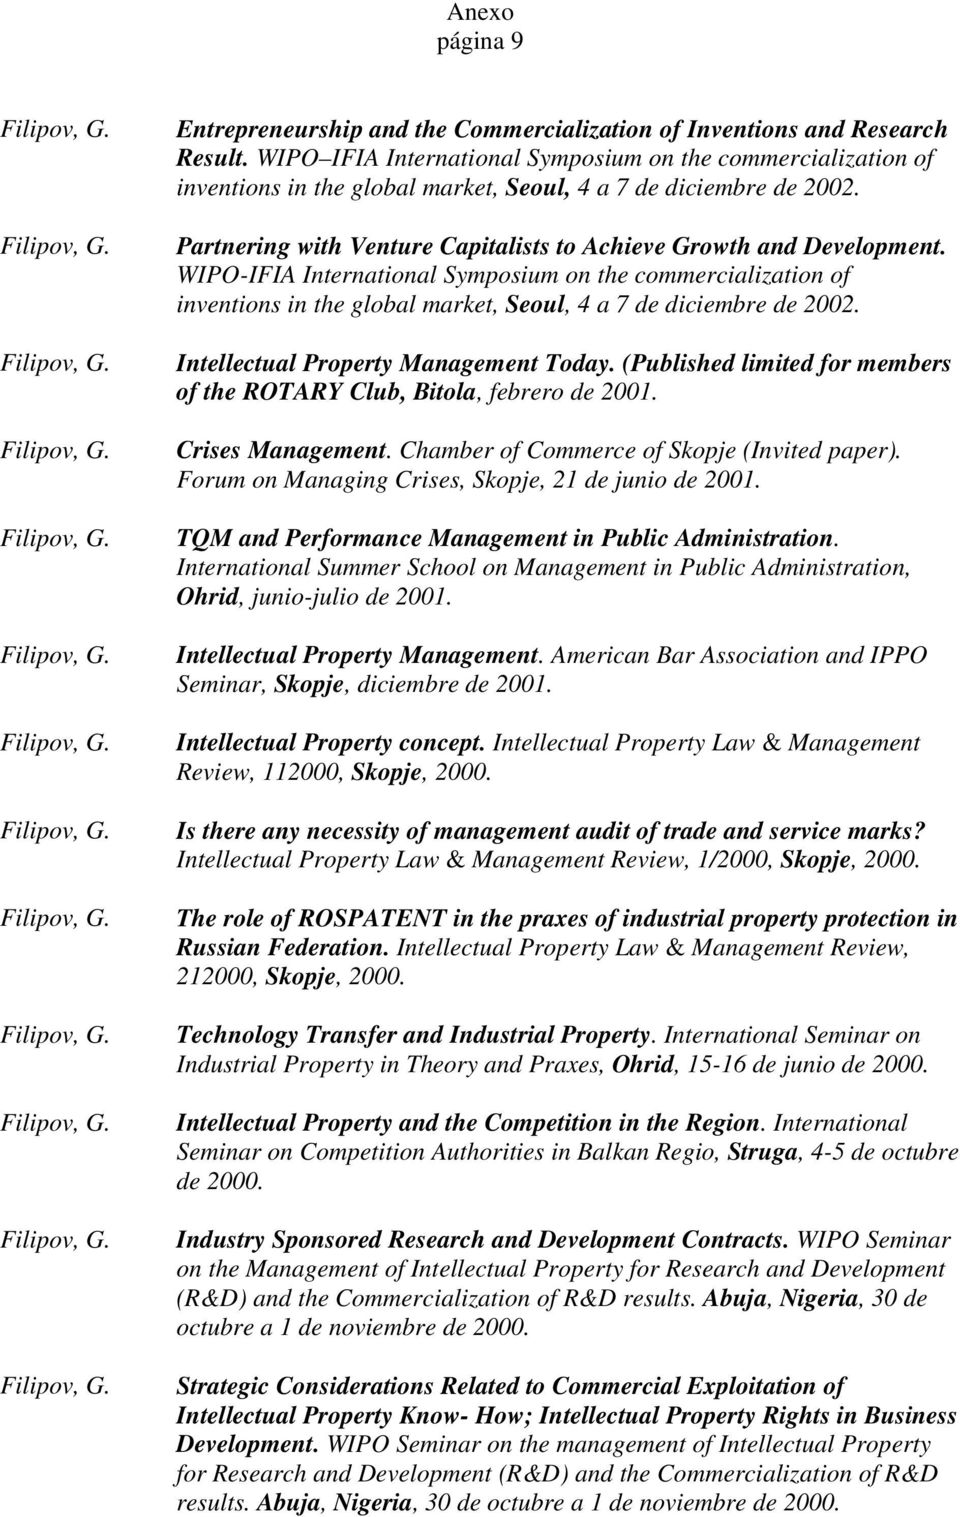 WIPO-IFIA International Symposium on the commercialization of inventions in the global market, Seoul, 4 a 7 de diciembre de 2002. Intellectual Property Management Today.